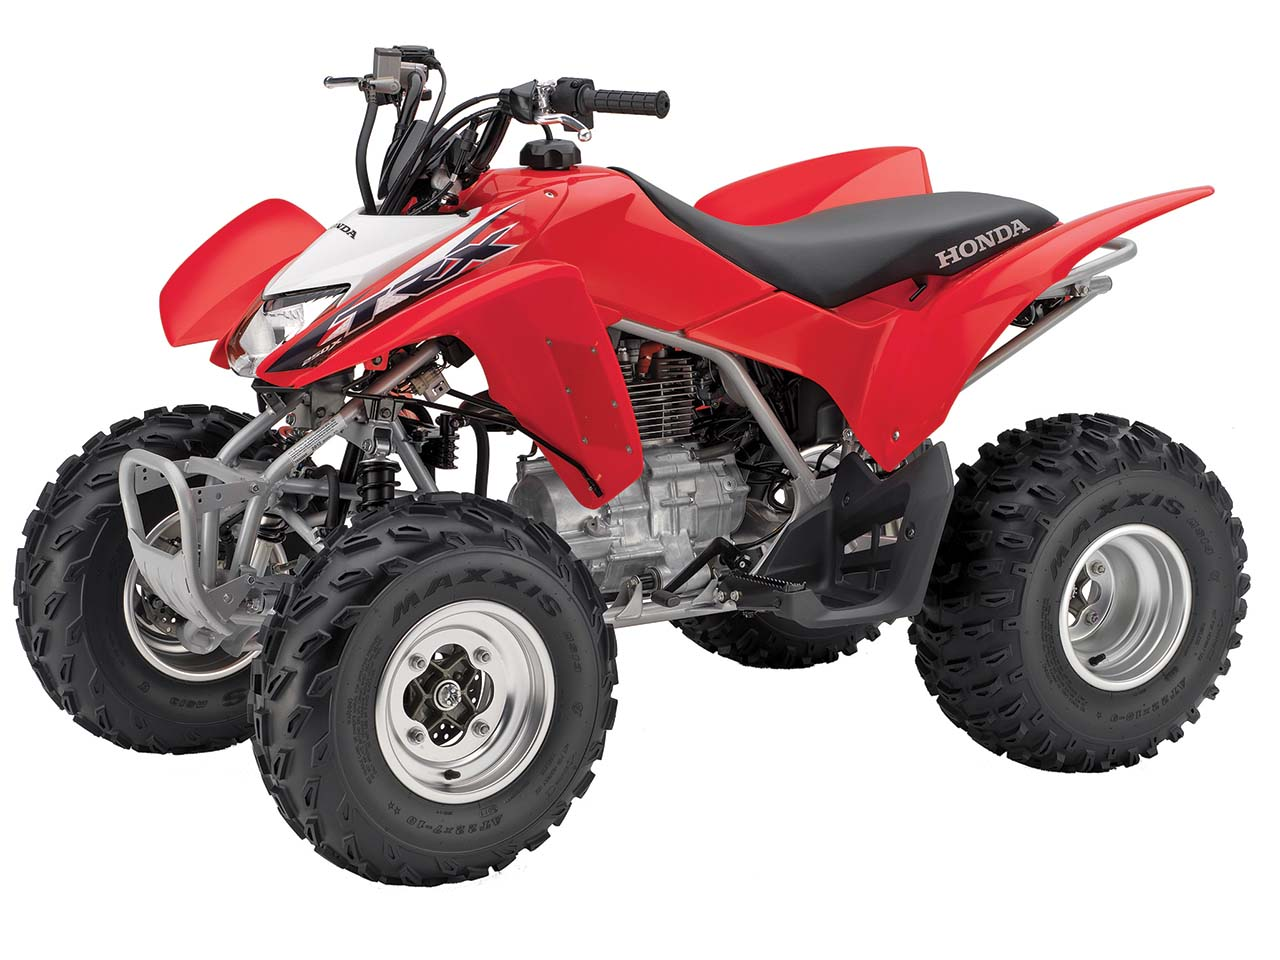 early release models 2013 honda atvs and big red muv atv illustrated. Black Bedroom Furniture Sets. Home Design Ideas